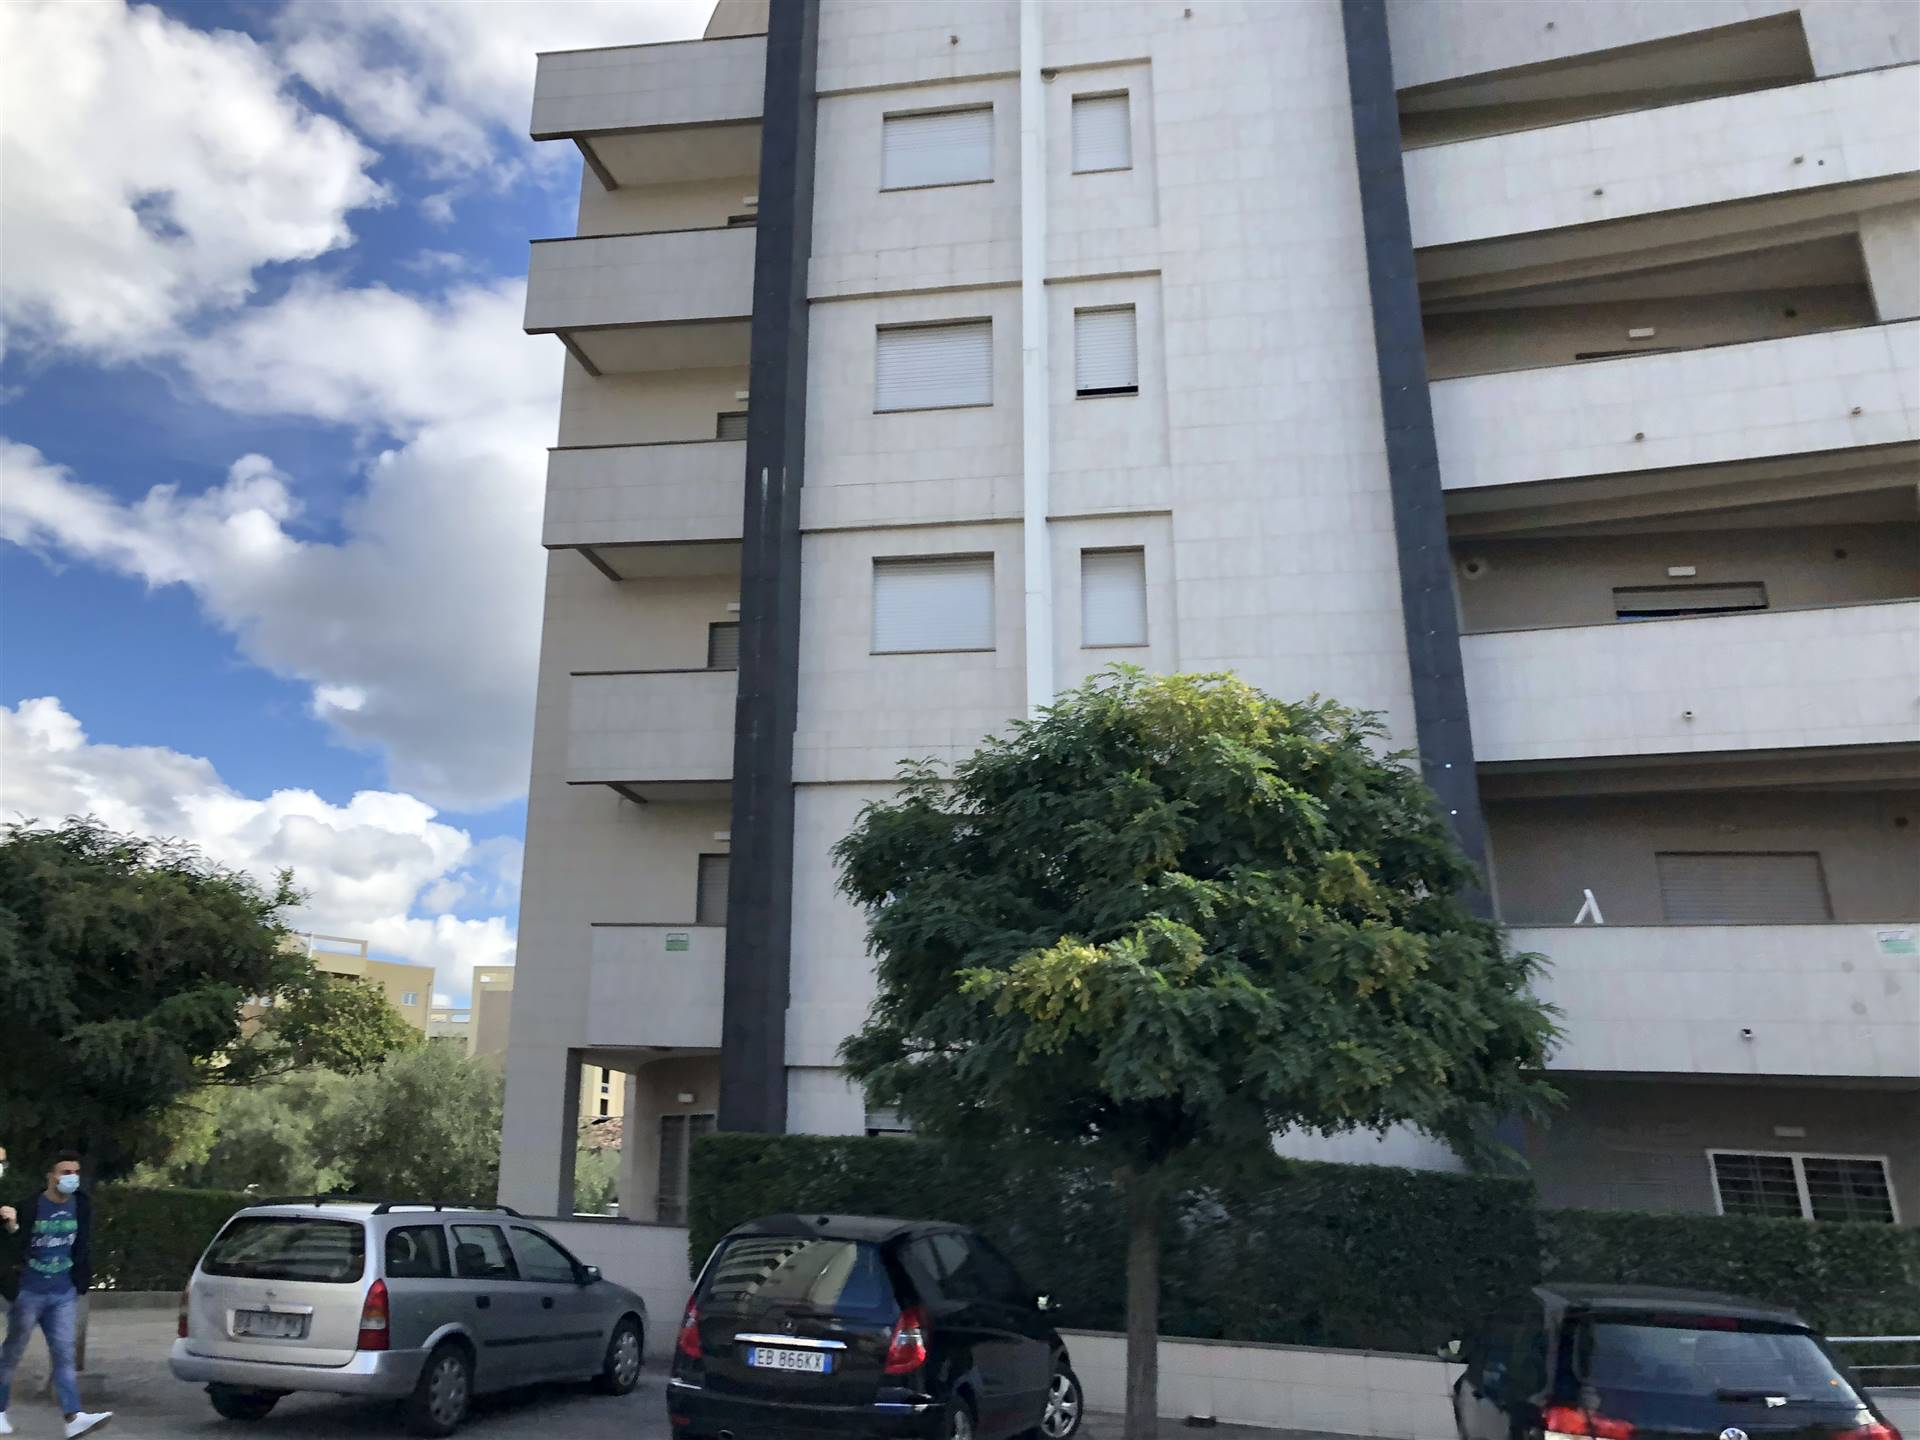 QUATTROMIGLIA, RENDE, Apartment for rent of 100 Sq. mt., Almost new, Heating Individual heating system, Energetic class: G, placed at 1° on 5,